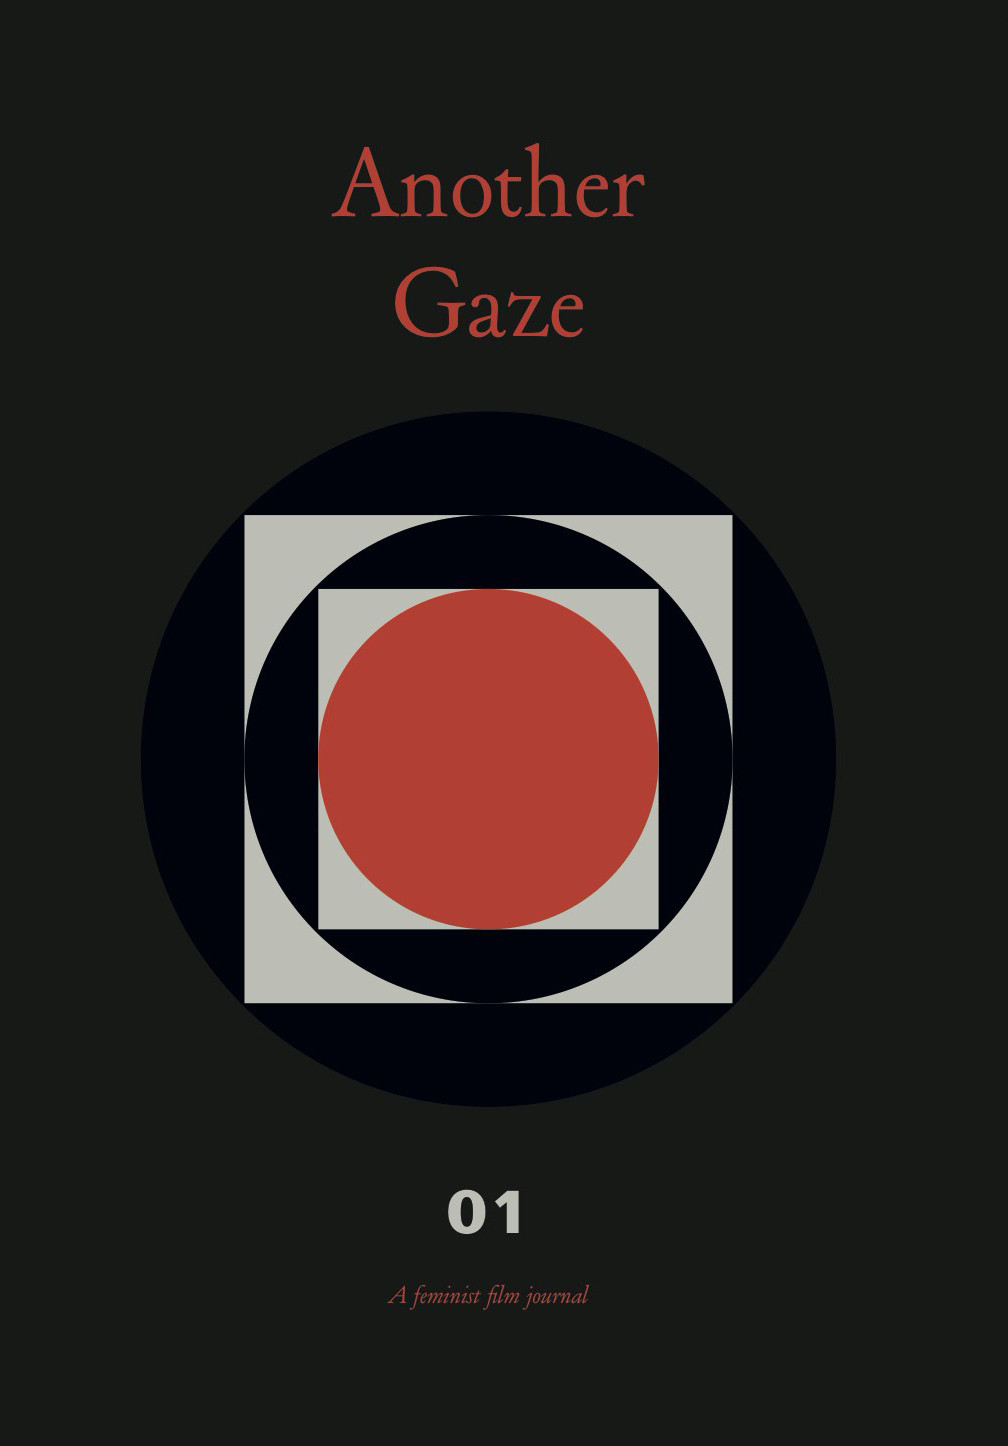 Another Gaze magazine / journal